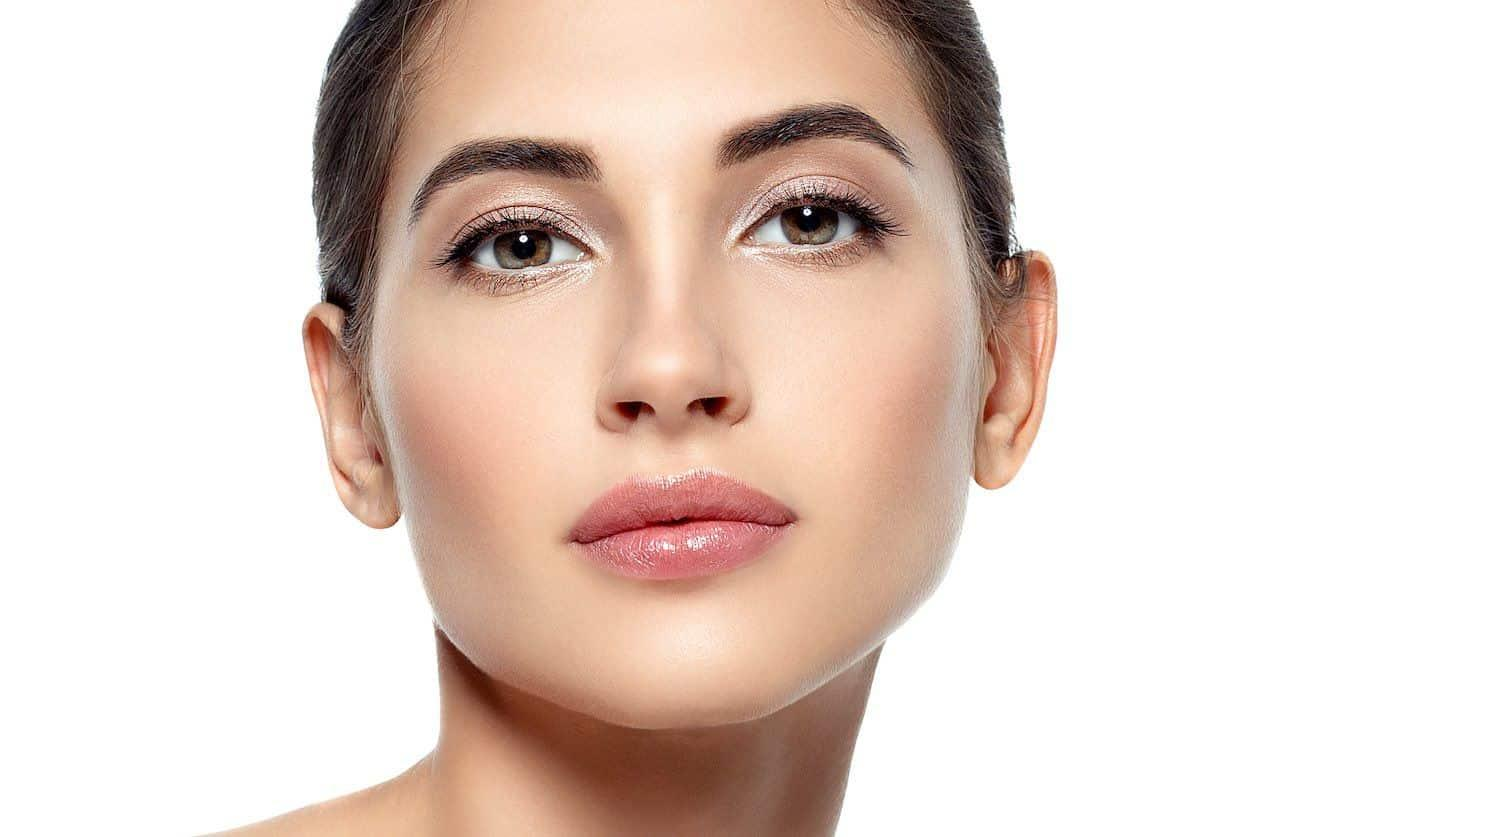 Non-Surgical Rhinoplasty (Nose Reshaping) | Costhetics